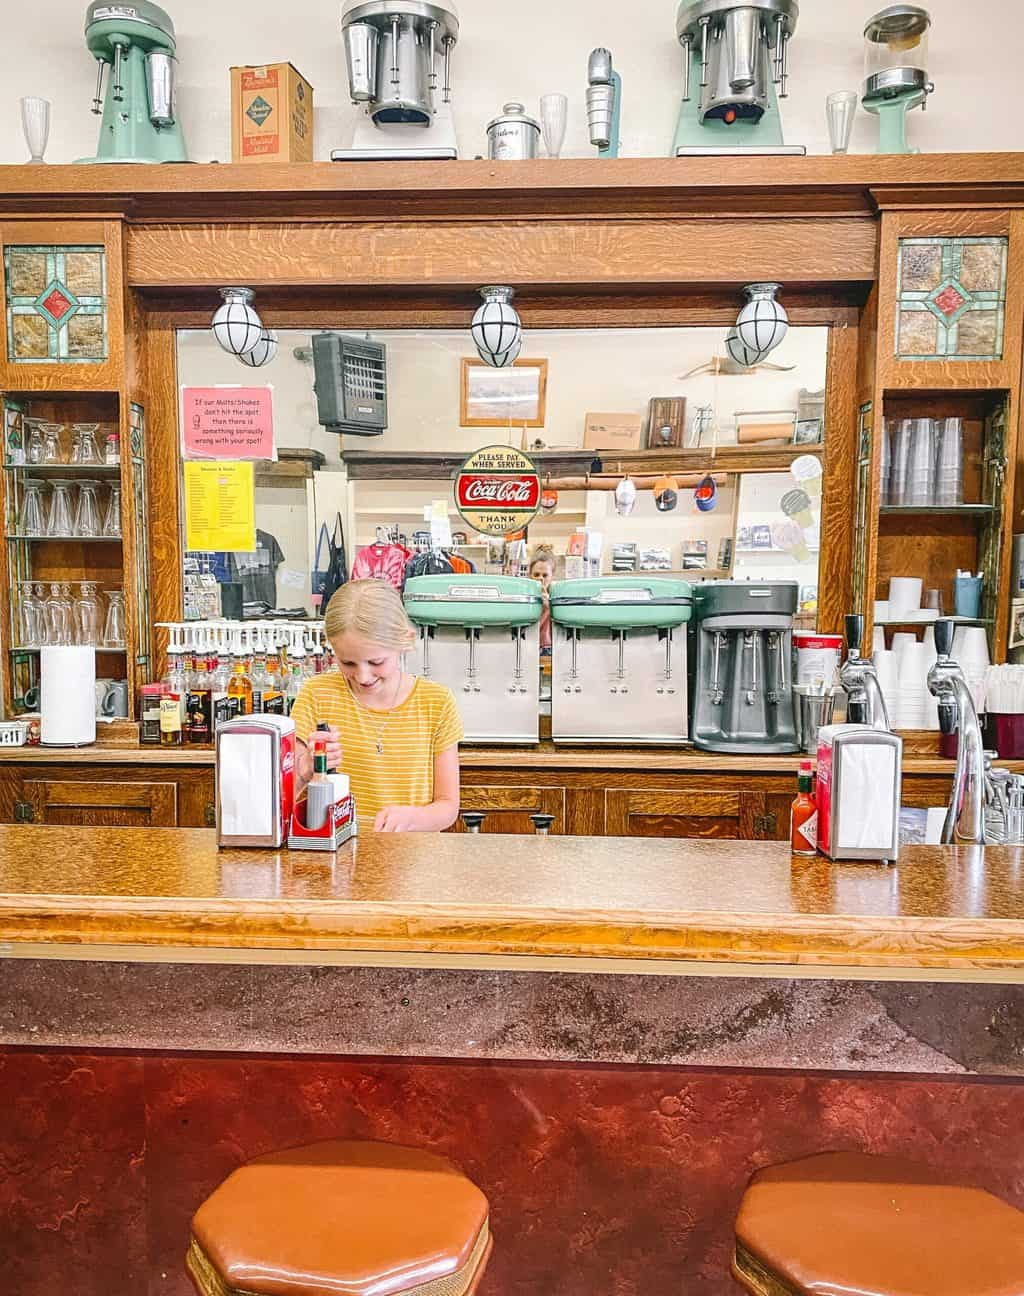 Cultivating Community (Buying a Soda Fountain)